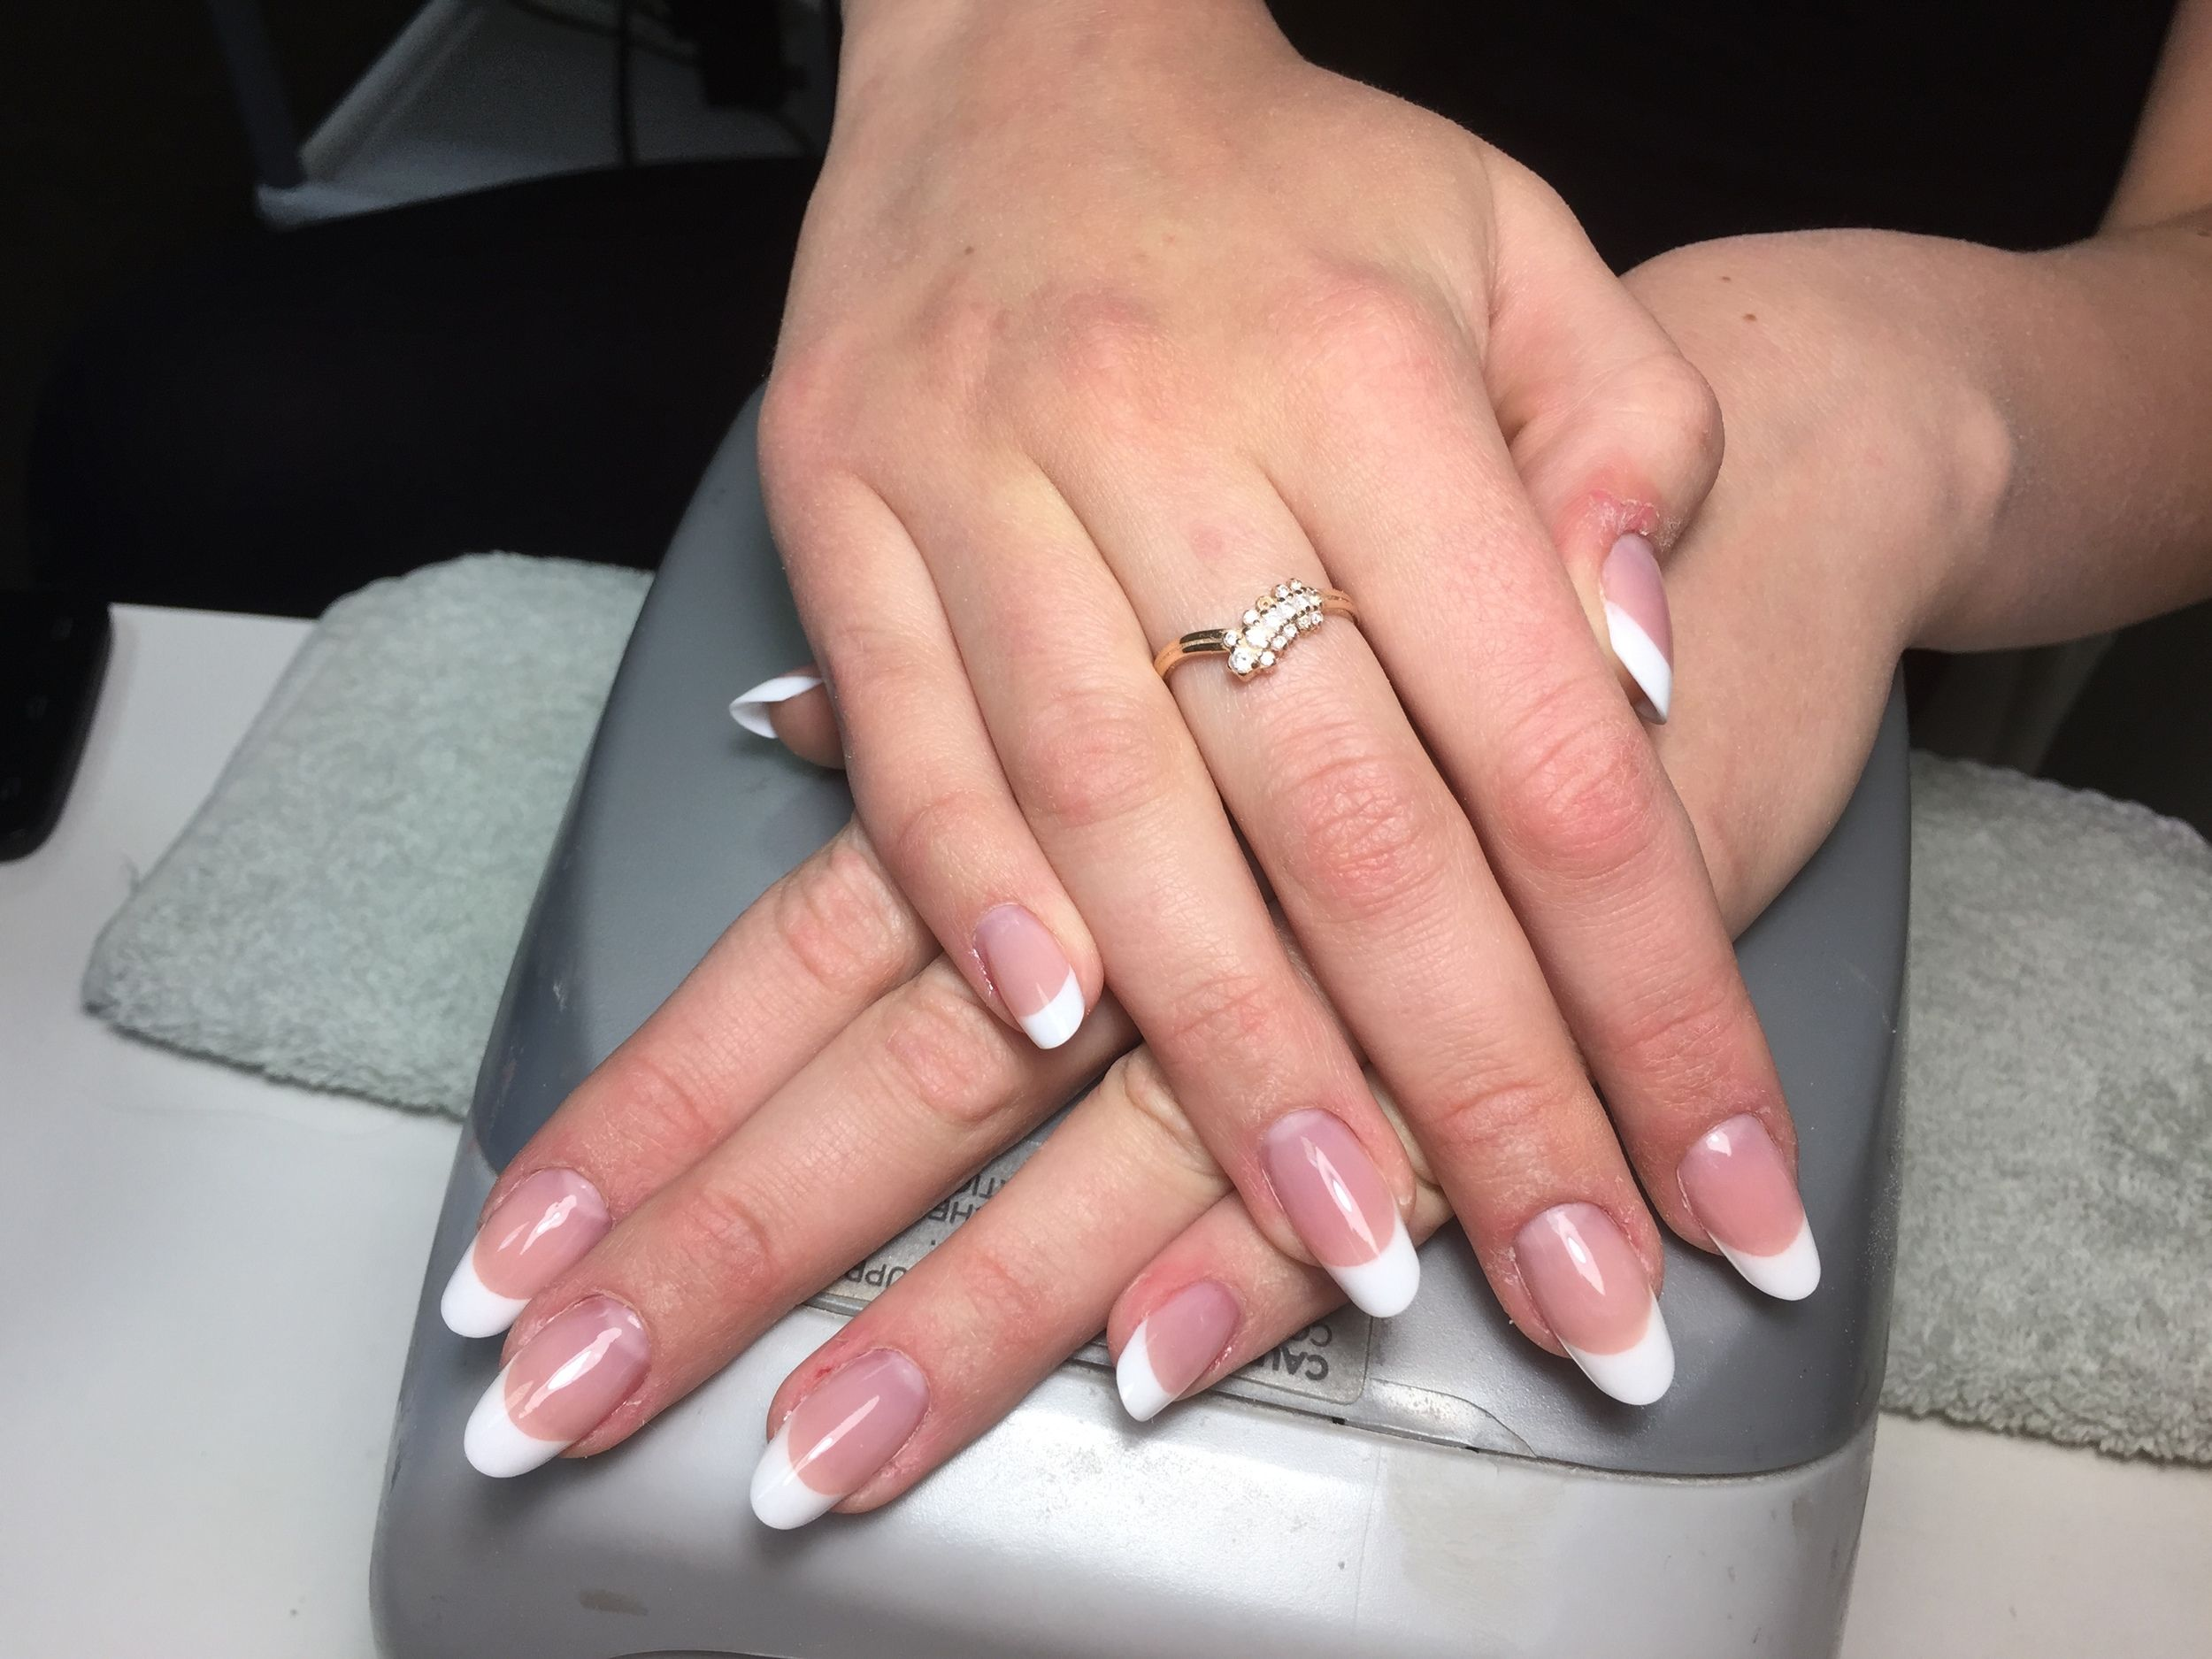 Sculpted Acrylic Nail Extensions With French Tips Oval Shape Acrylicnails Frenchtips Permanentfrench Brighton Nails